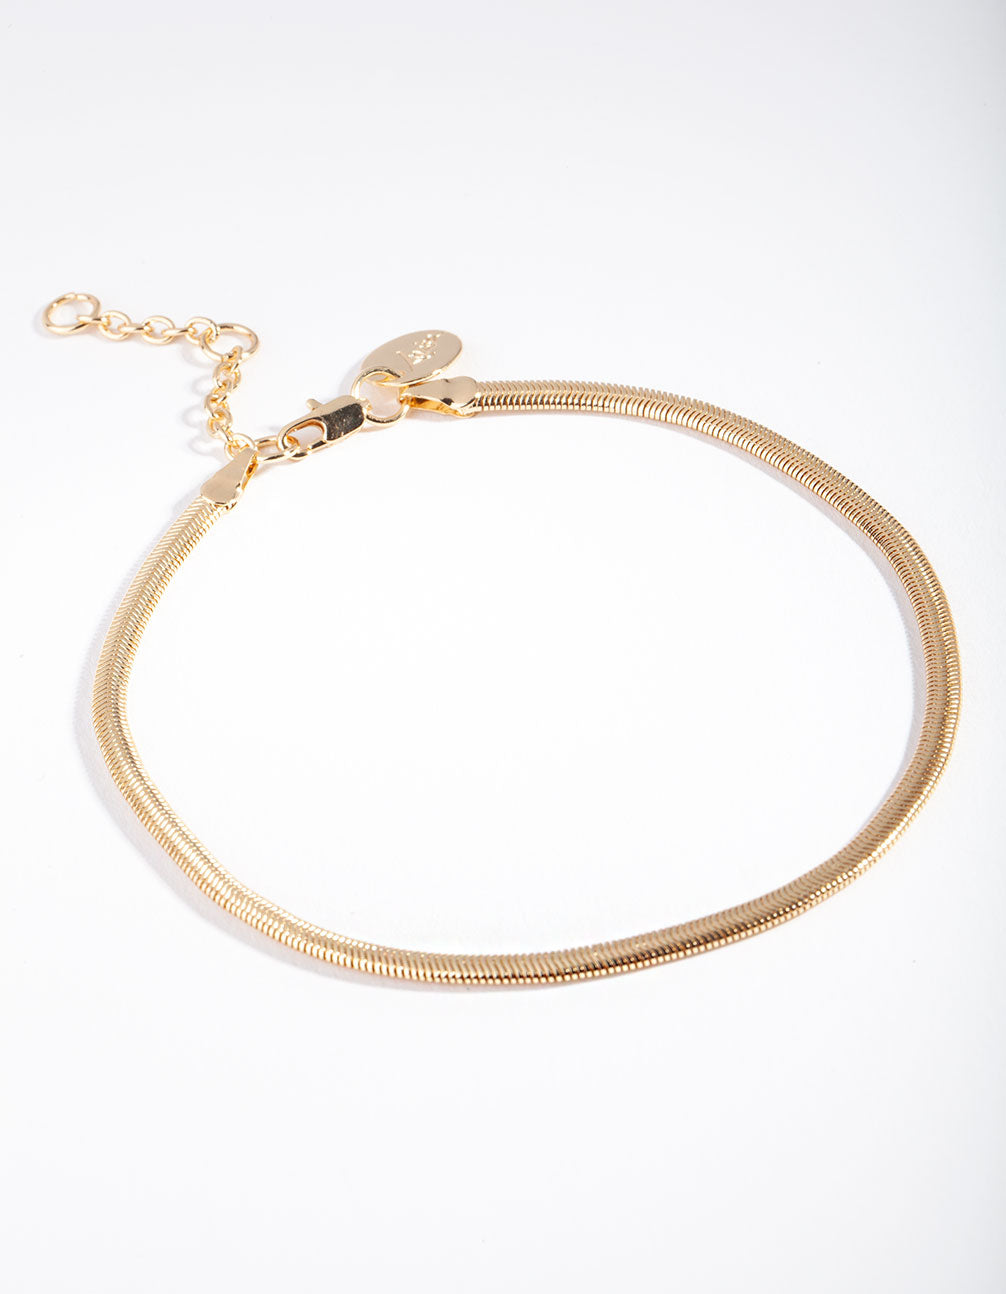 Real Gold Plated Snake Chain Anklet